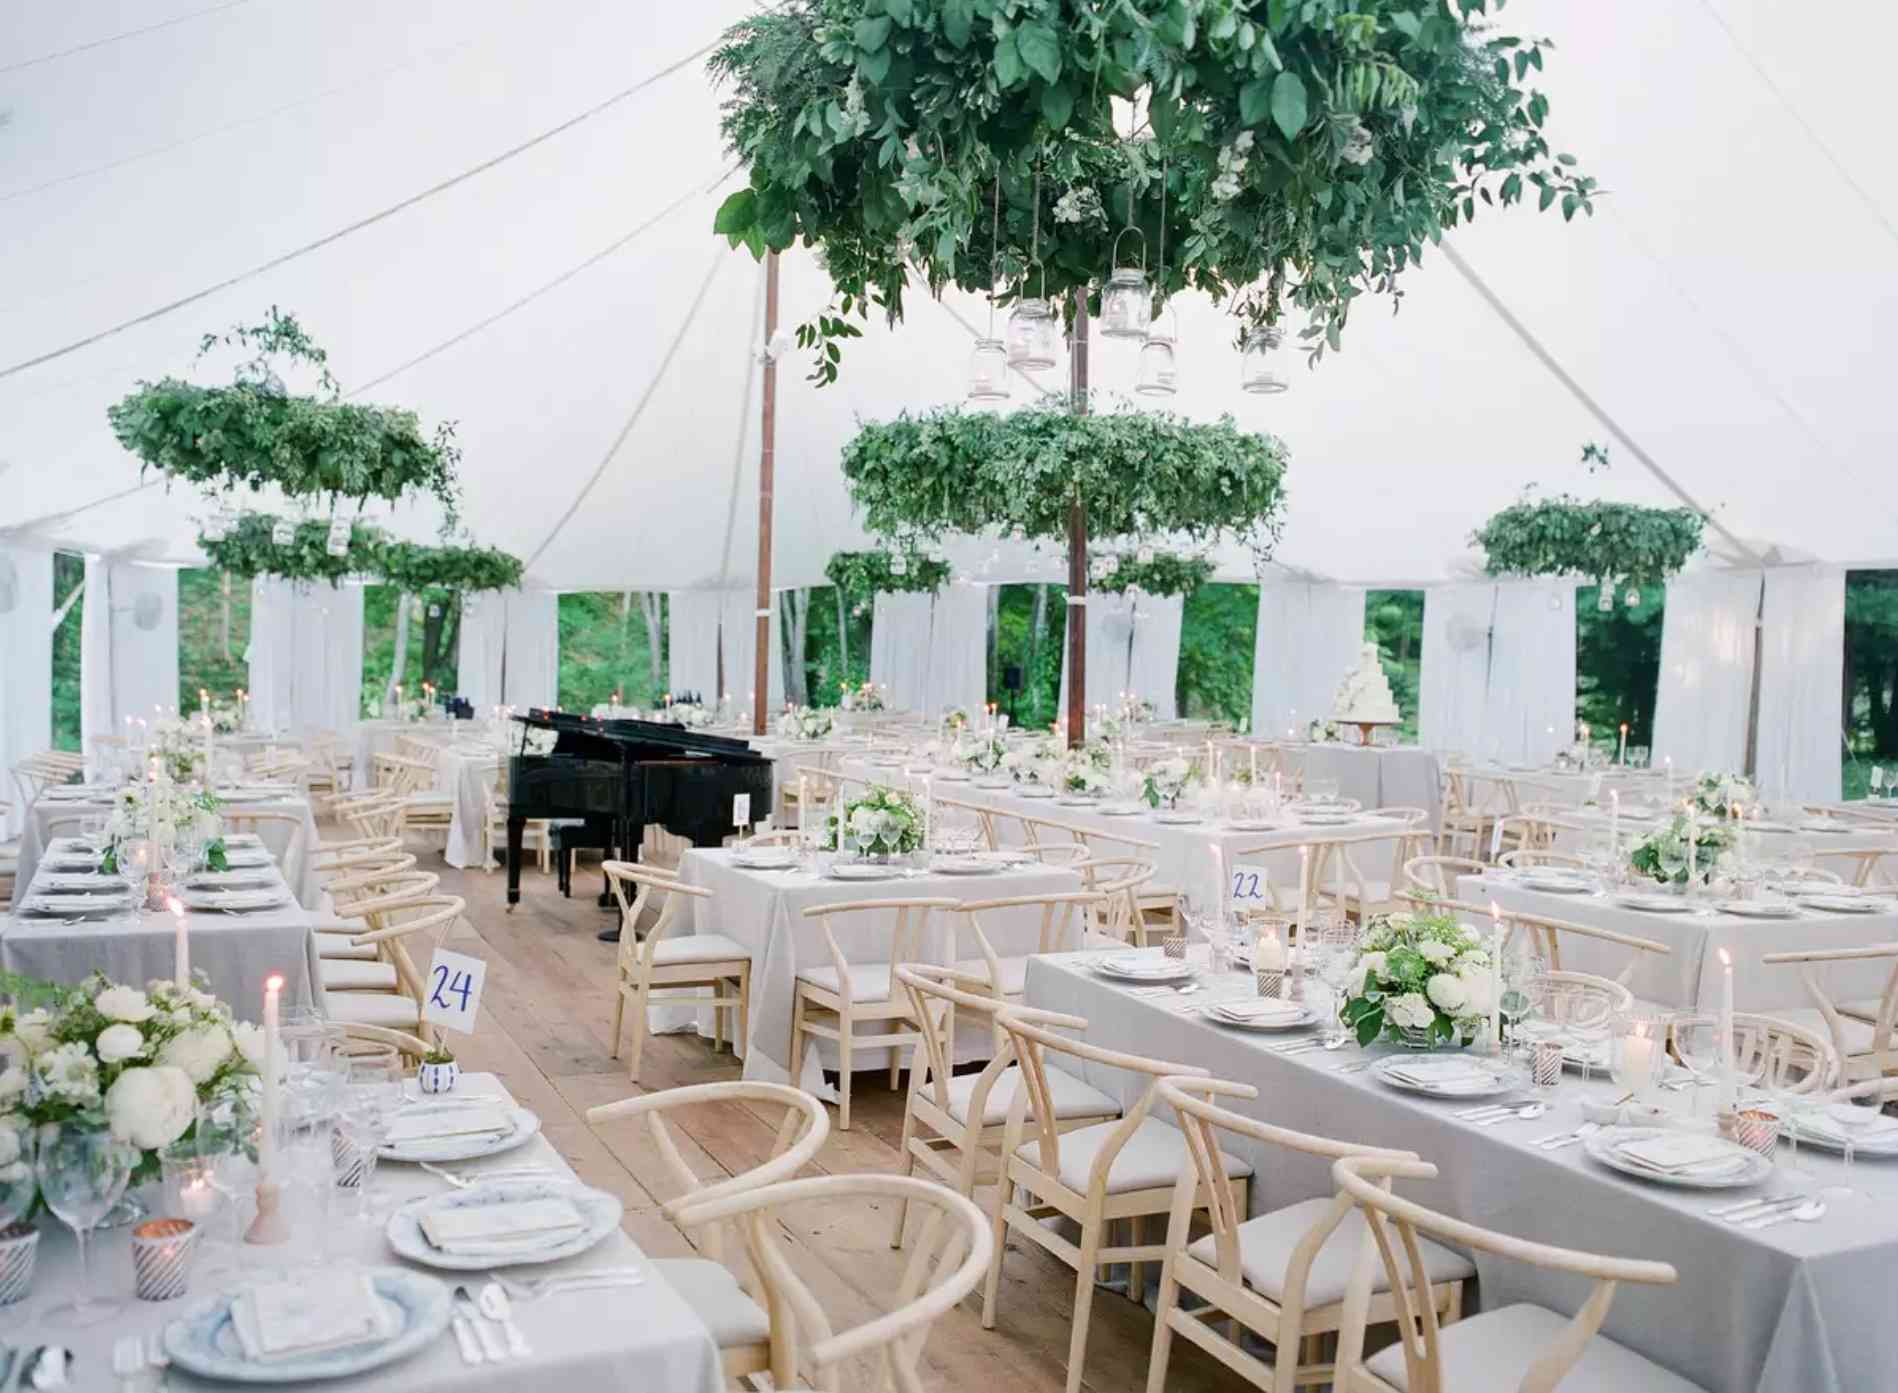 Tented reception with greenery and gray linens